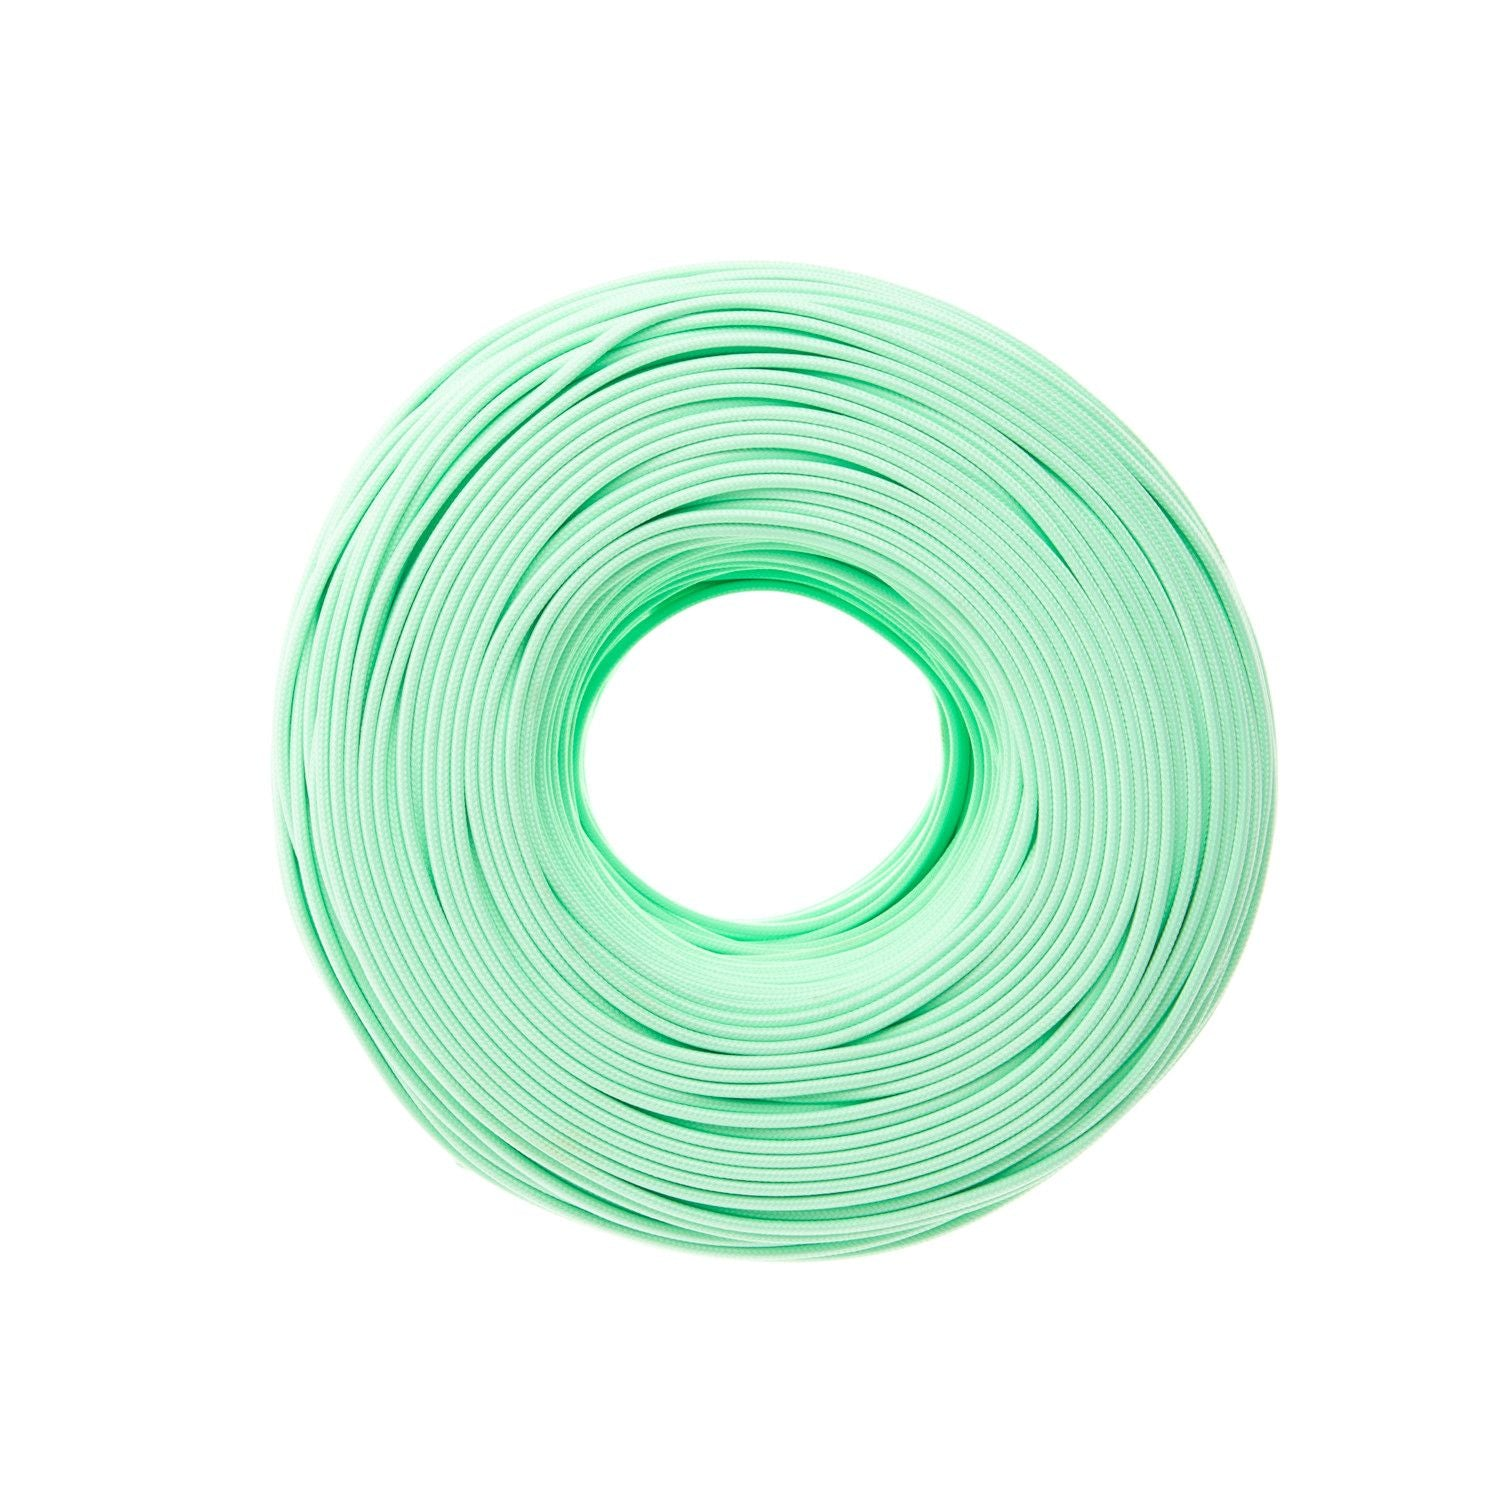 Diy Flat Parallel Wire Spt 1 White Color Cord Company Electrical Wiring Mint